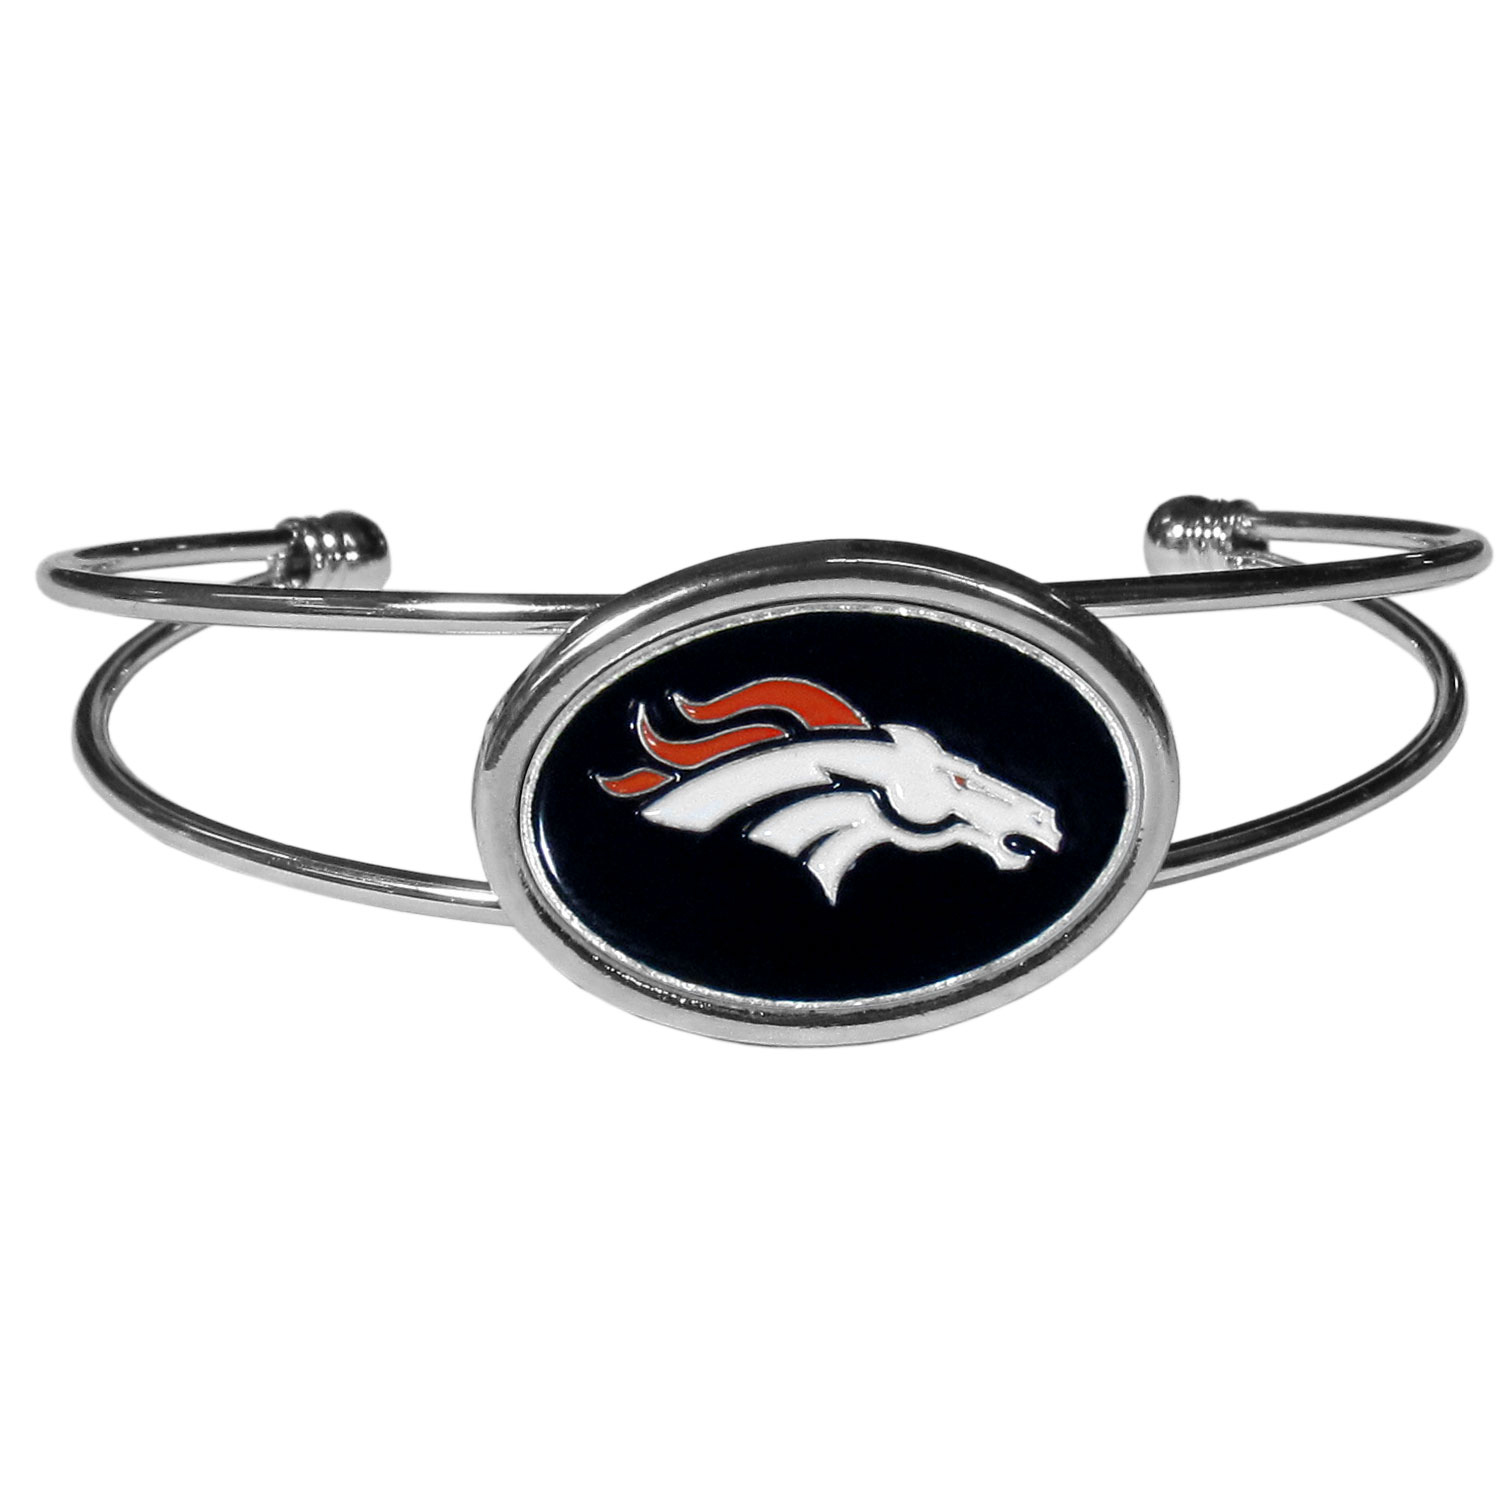 Denver Broncos Cuff Bracelet - These comfortable and fashionable double-bar cuff bracelets feature a 1 inch metal Denver Broncos inset logo with enameled detail.